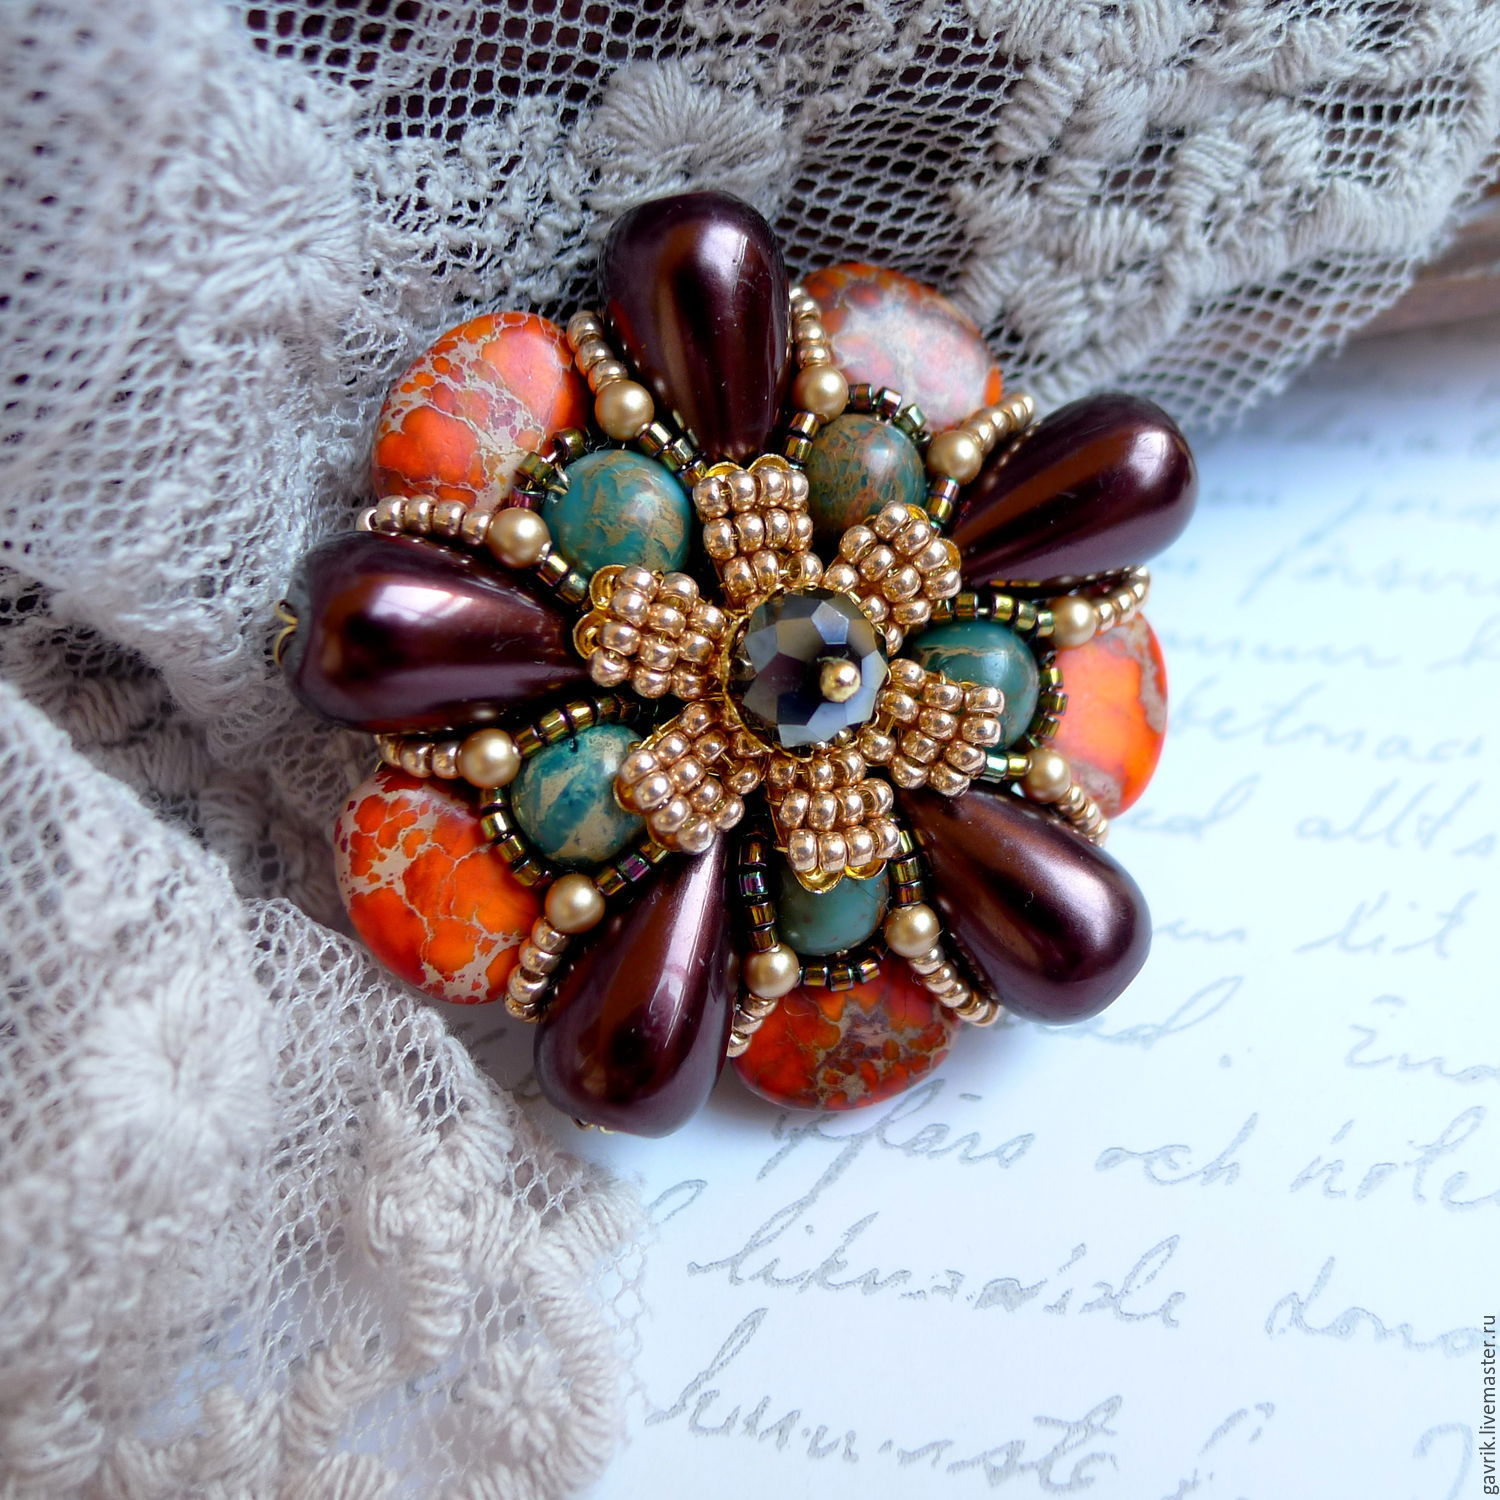 Brooch handmade `Star of Kashmir` stones and pearls Mallorca. Brooch star pin-order. The brooch on the dress, jacket, coat, stole. Gift woman, gift girl for any occasion.